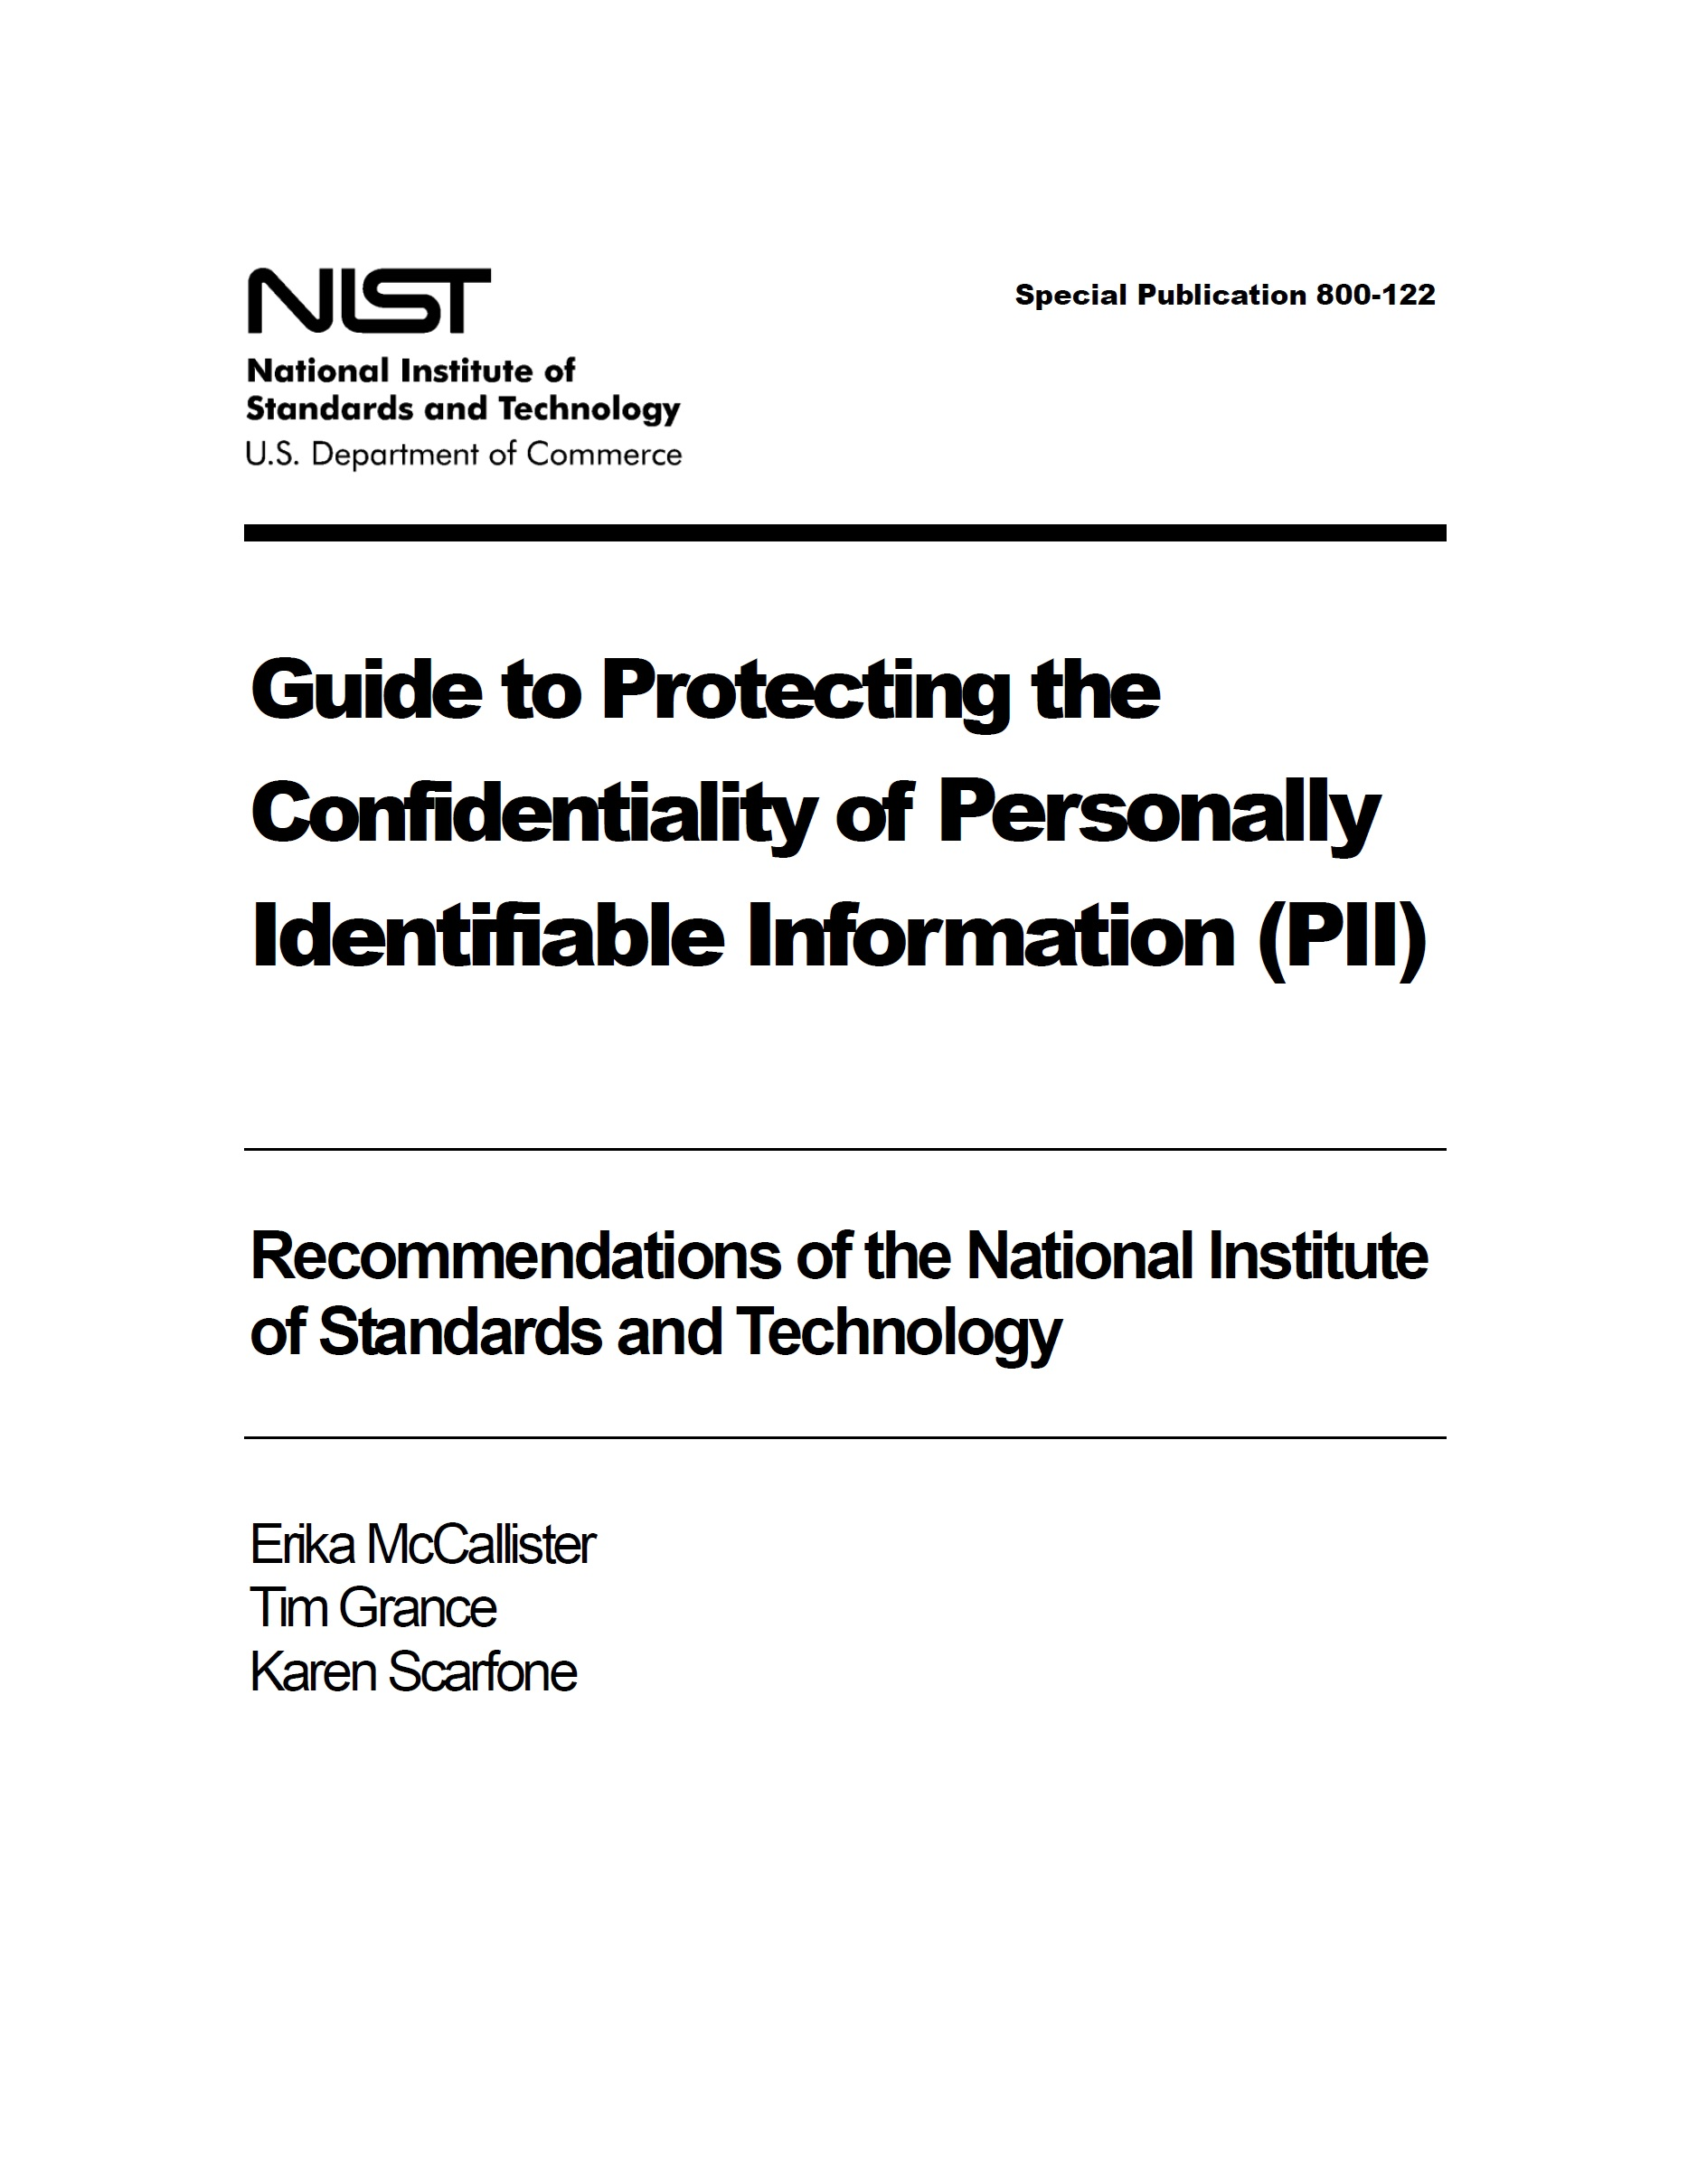 Guide to Protecting the Confidentiality of Personally Identifiable Information (PII) – NIST